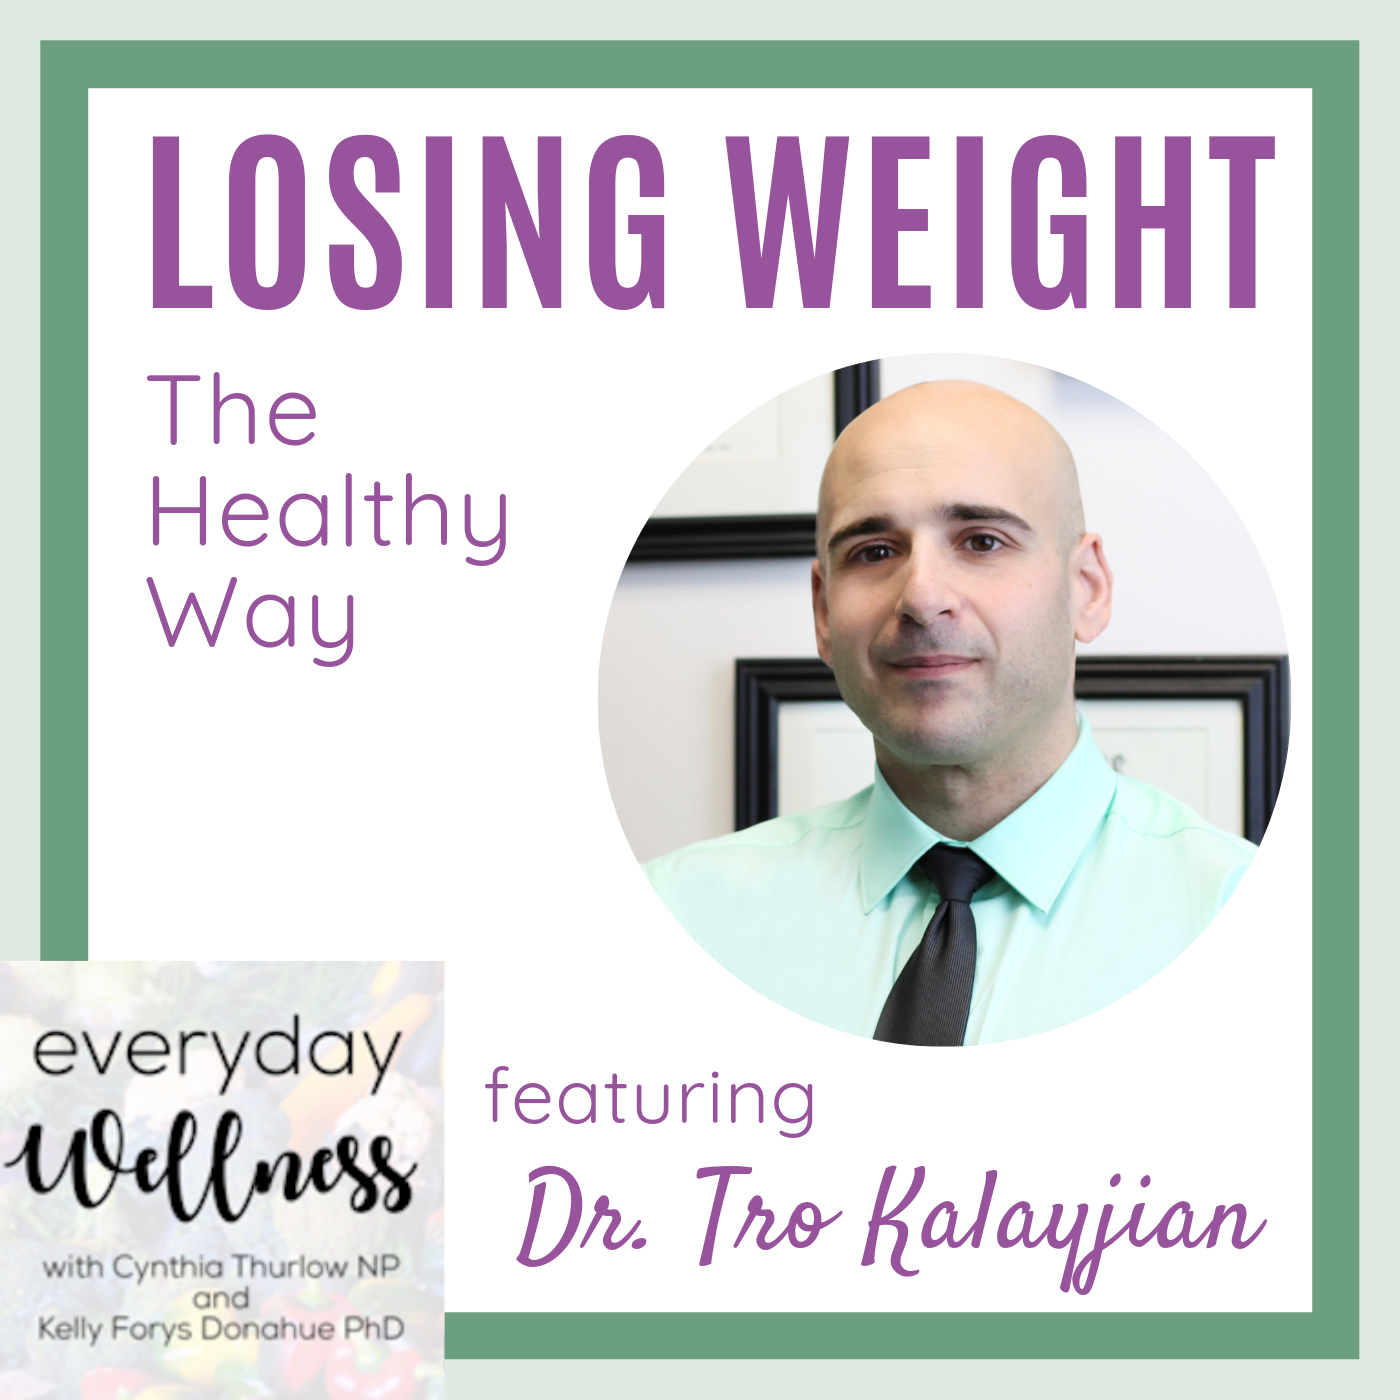 Episode 54: Losing Weight The Healthy Way